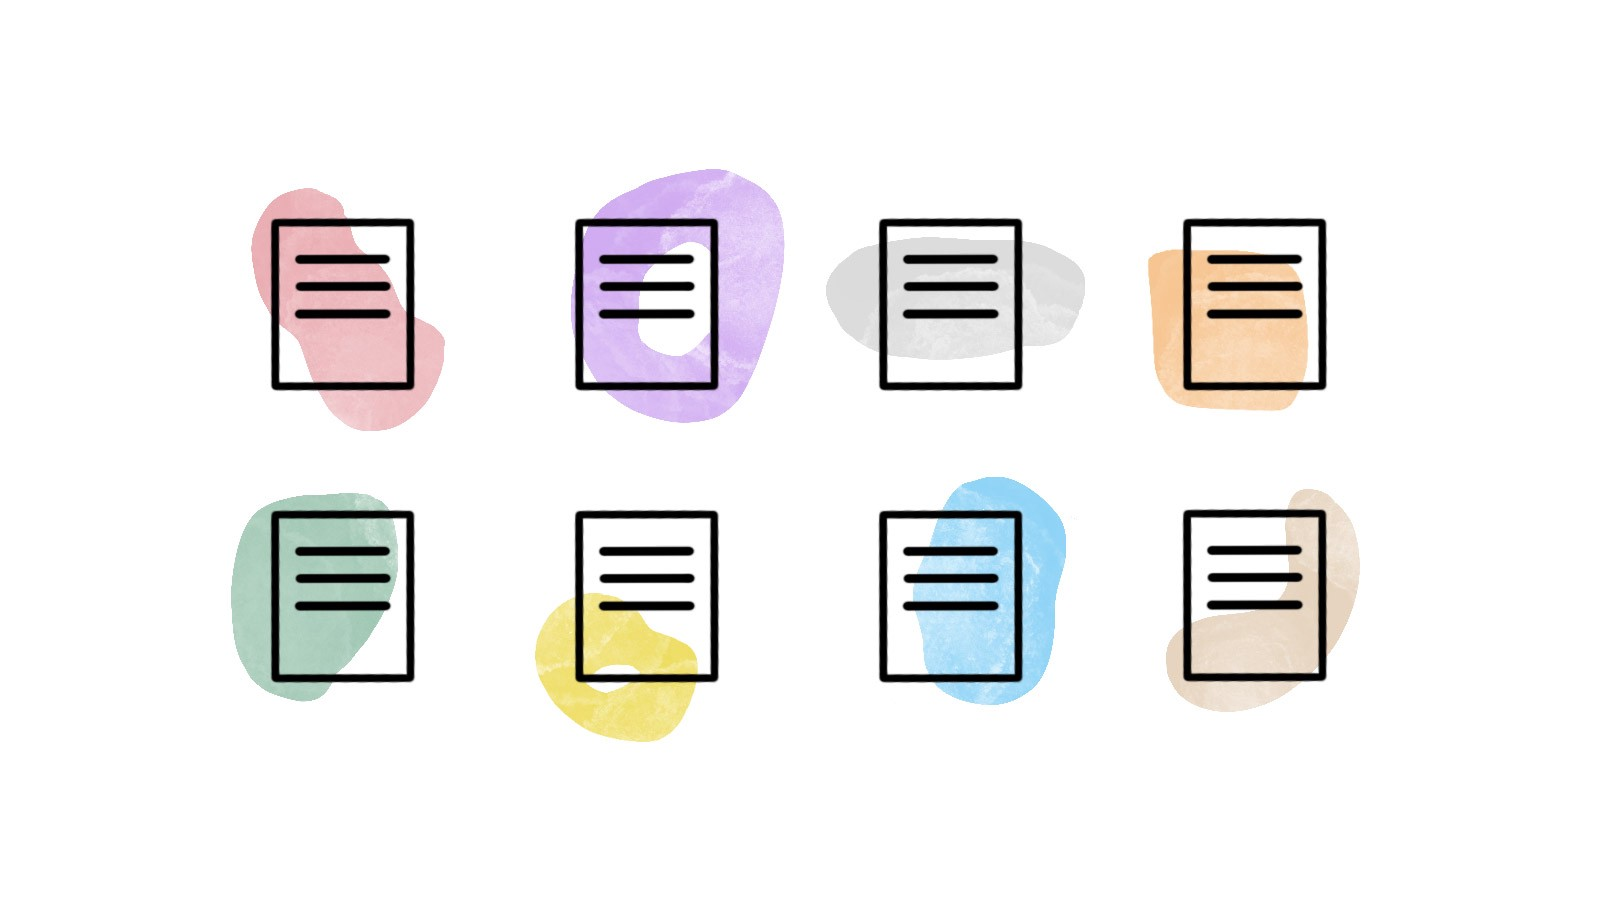 Illustration showing a number of story icons with brushstrokes of varying colors.